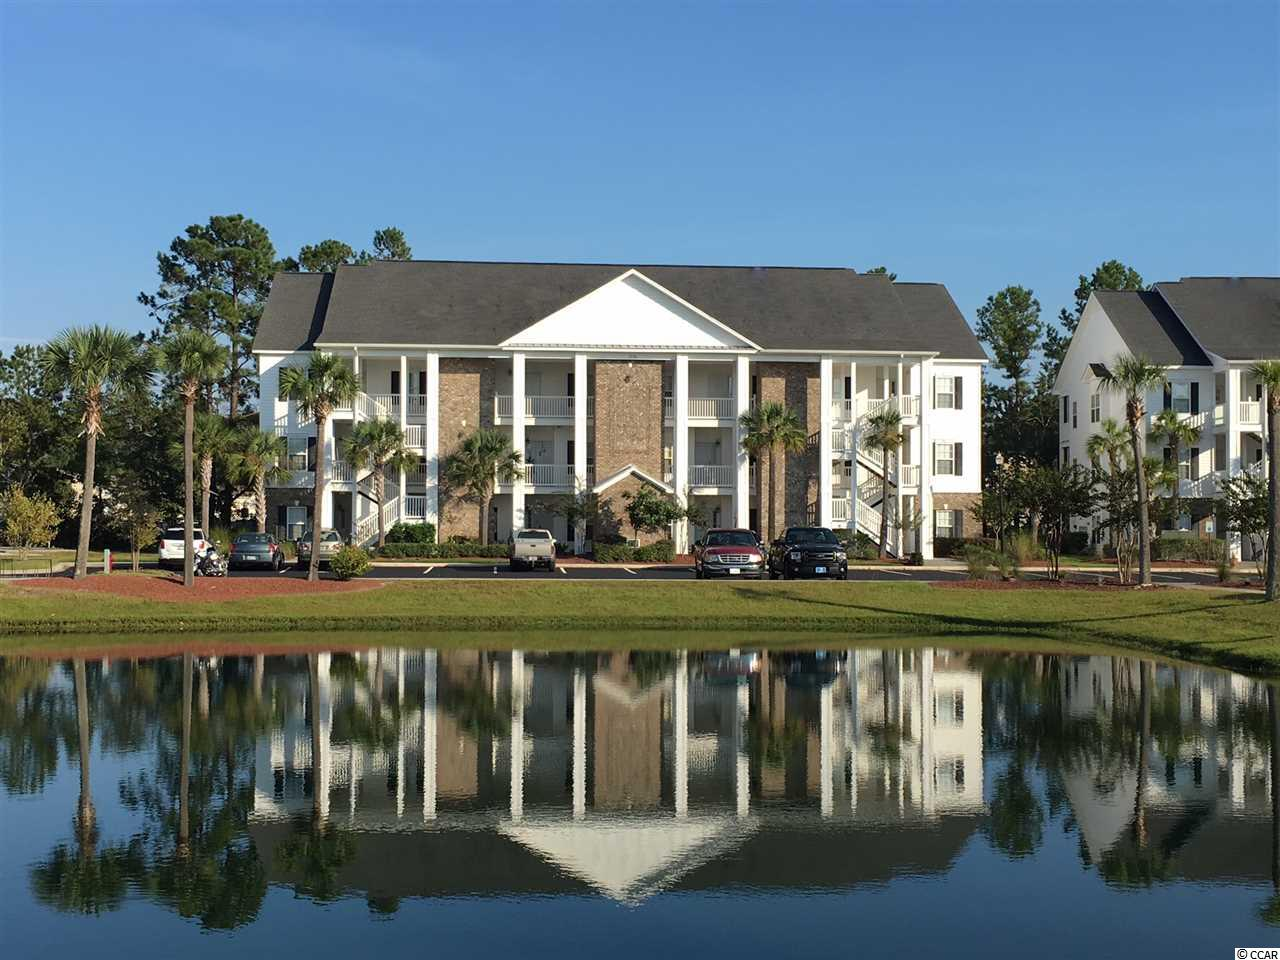 You have to see this amazing view for yourself. This gorgeous end unit 3BR, 2BA villa has wonderful views of the lake, so enjoying your morning coffee on your screened in porch just got even more relaxing. This villa will feature the Platinum package which includes; white all wood soft closed cabinets, click in luxury vinyl plank flooring, ceiling fans in master and living room. Other amazing features of this home include 9ft ceilings, granite countertops in kitchen and matching granite in all bathrooms, screened in porch, outside storage unit, walk in closets and more. This community will be totally gated once the last building is completed, low HOA fees and only 2 miles to the beach. This property is so centrally located on the South end to everything. This is a perfect primary home, second home or beach retreat. The units are all on one level and the care free living provide by this community gives you the full essence of coastal living. This building is currently under construction (pictures are of our current model and not the actual unit for sale) and has an estimated completion date of December 2019 (that can change). We do have an on site model available to see everyday; the model hours are Monday - Friday 10am-4pm, Saturday 12pm-4pm and Sunday 12pm-3pm. Stop by and tour these gorgeous homes for yourself. All Sq. Footage is approximate and not guaranteed, buyer is responsible for verification.